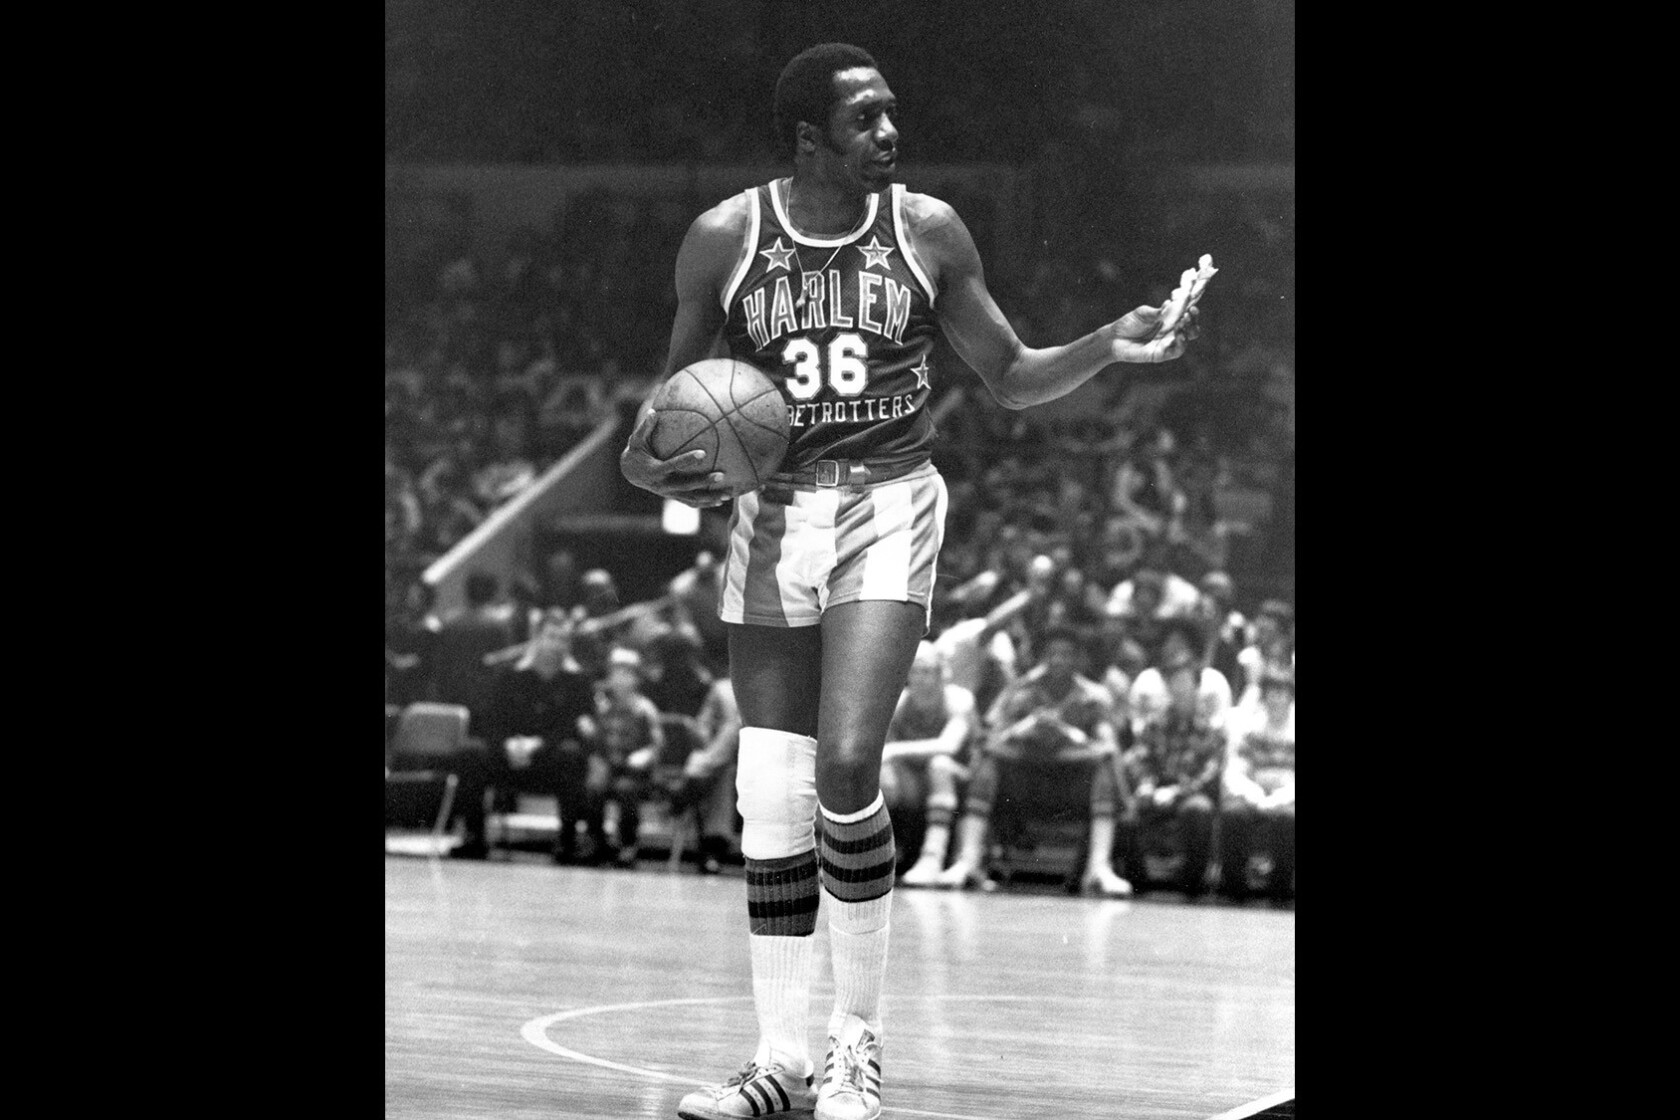 Meadowlark Lemon dies at 83